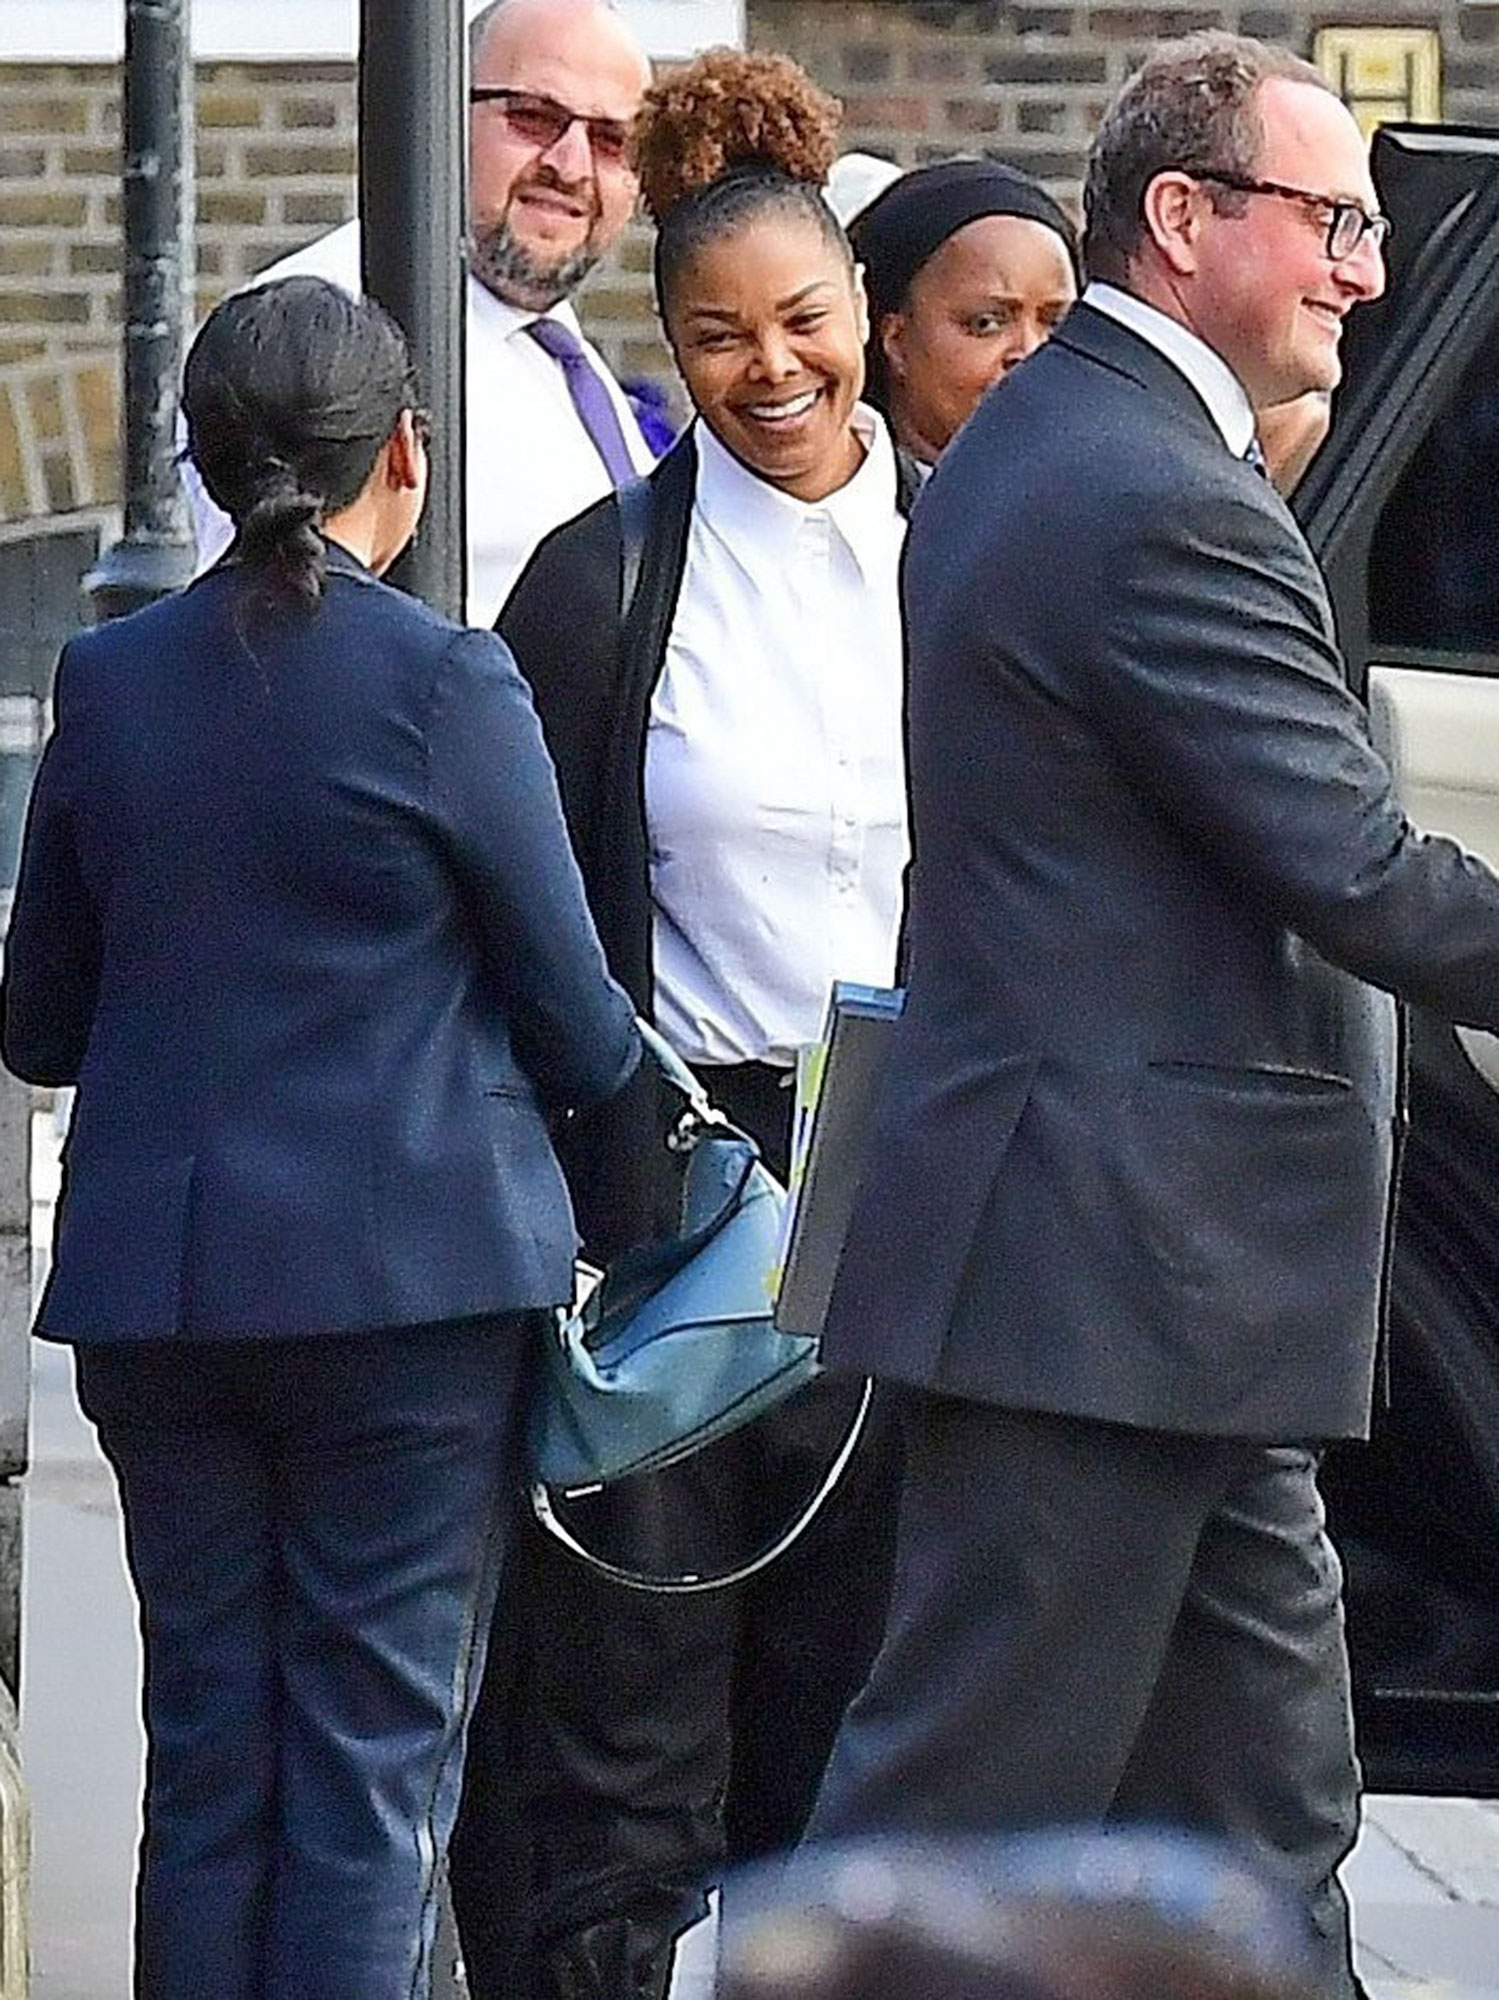 *PREMIUM-EXCLUSIVE* Janet Jackson and estranged Husband Wissam Al Manna were spotted leaving the Royal Courts of Justice in London